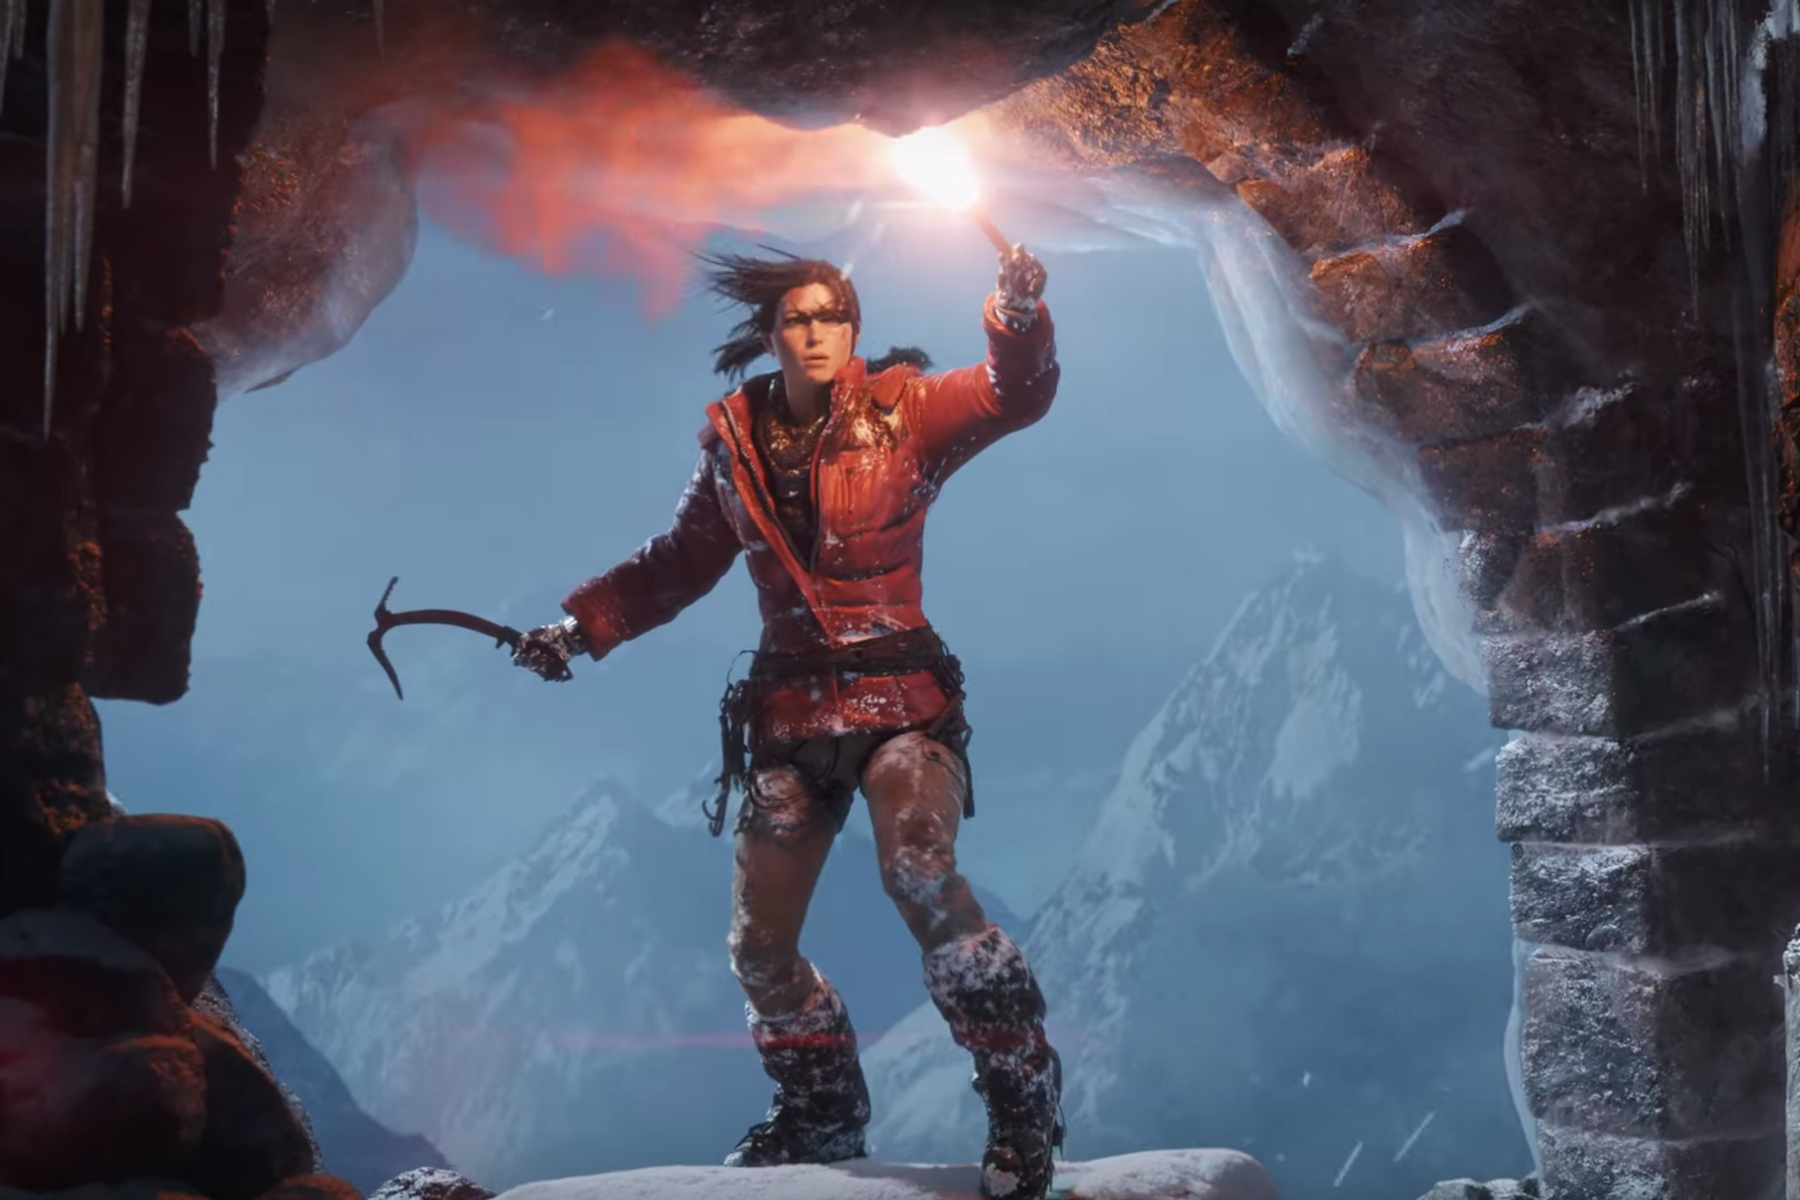 Lara Croft Returns in 'Rise of the Tomb Raider' Trailer